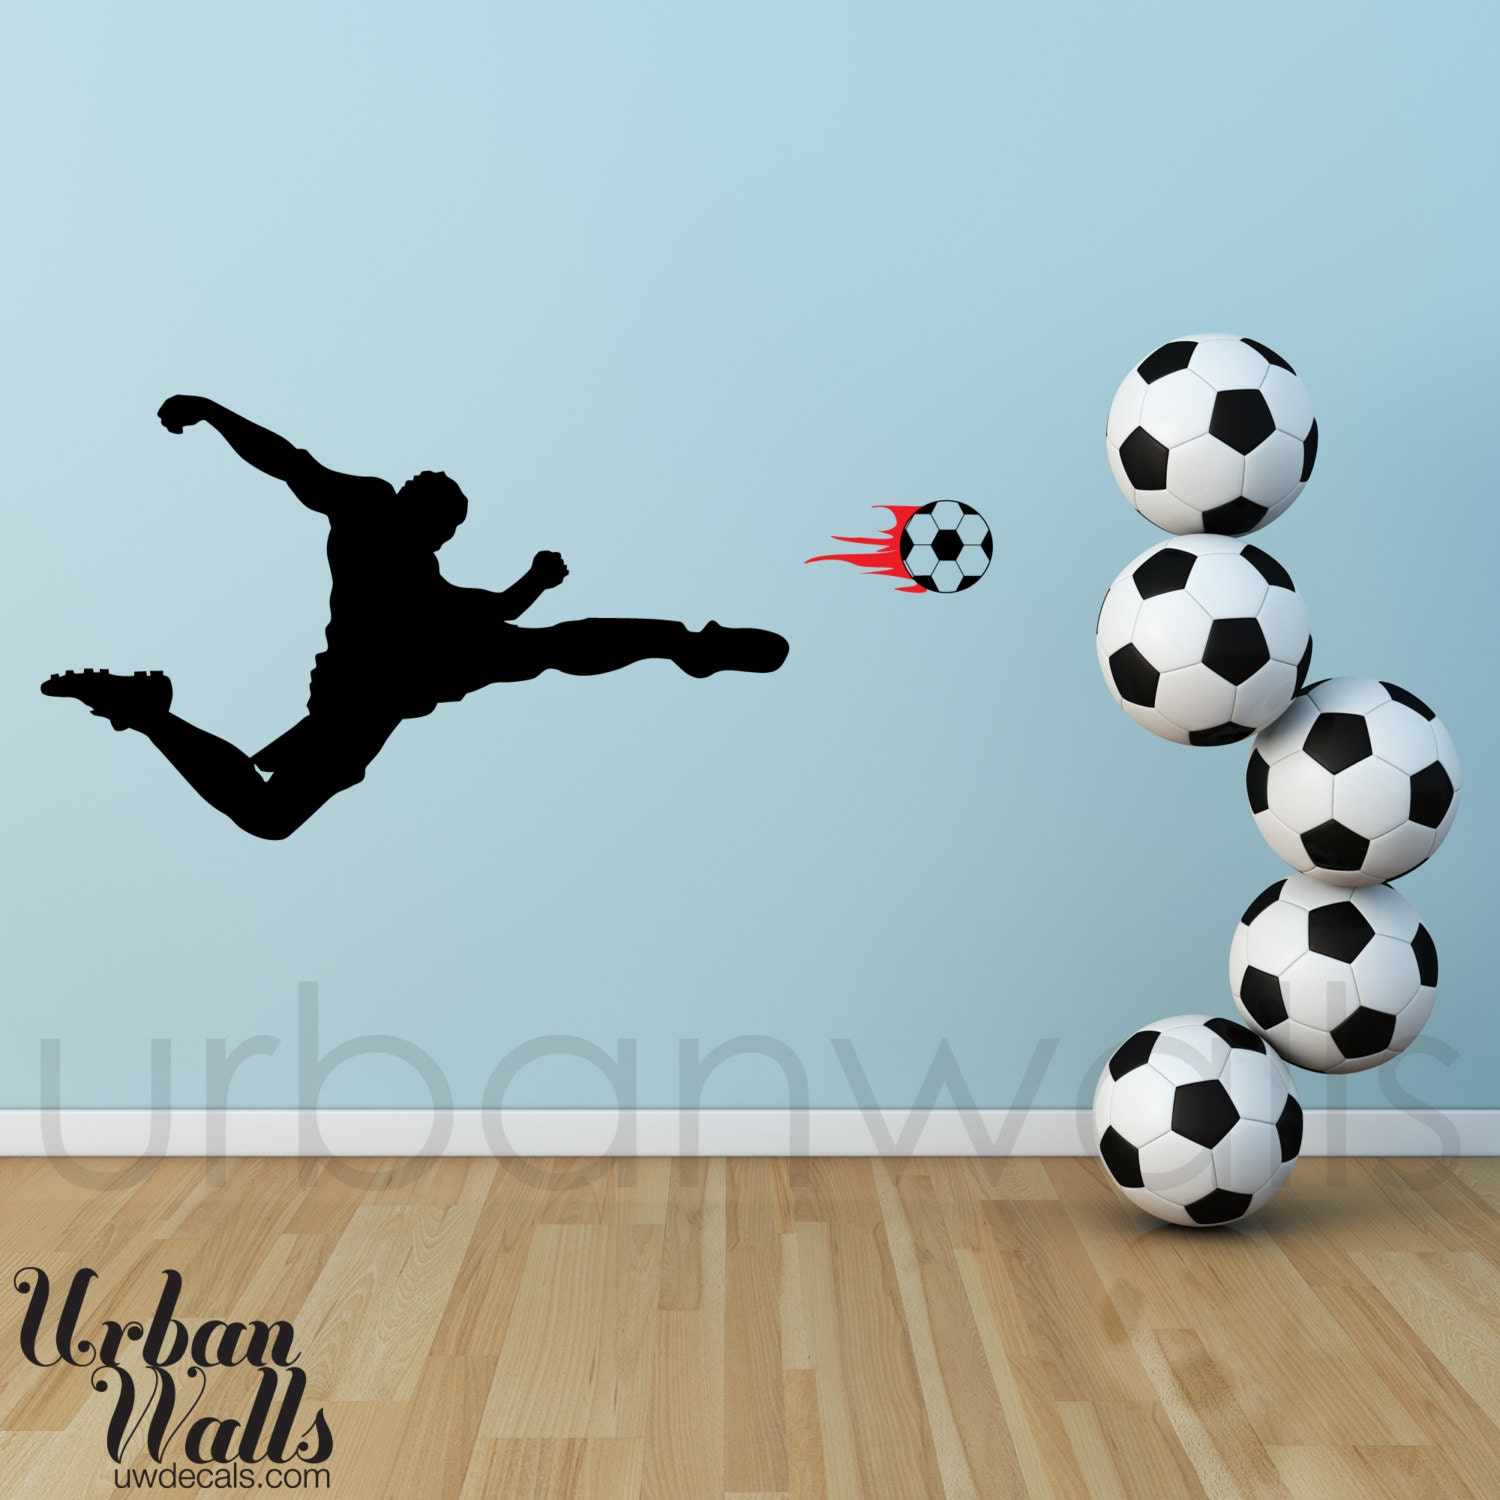 vinyl wall sticker decal art soccer player removable football soccer ball letter wall stickers art